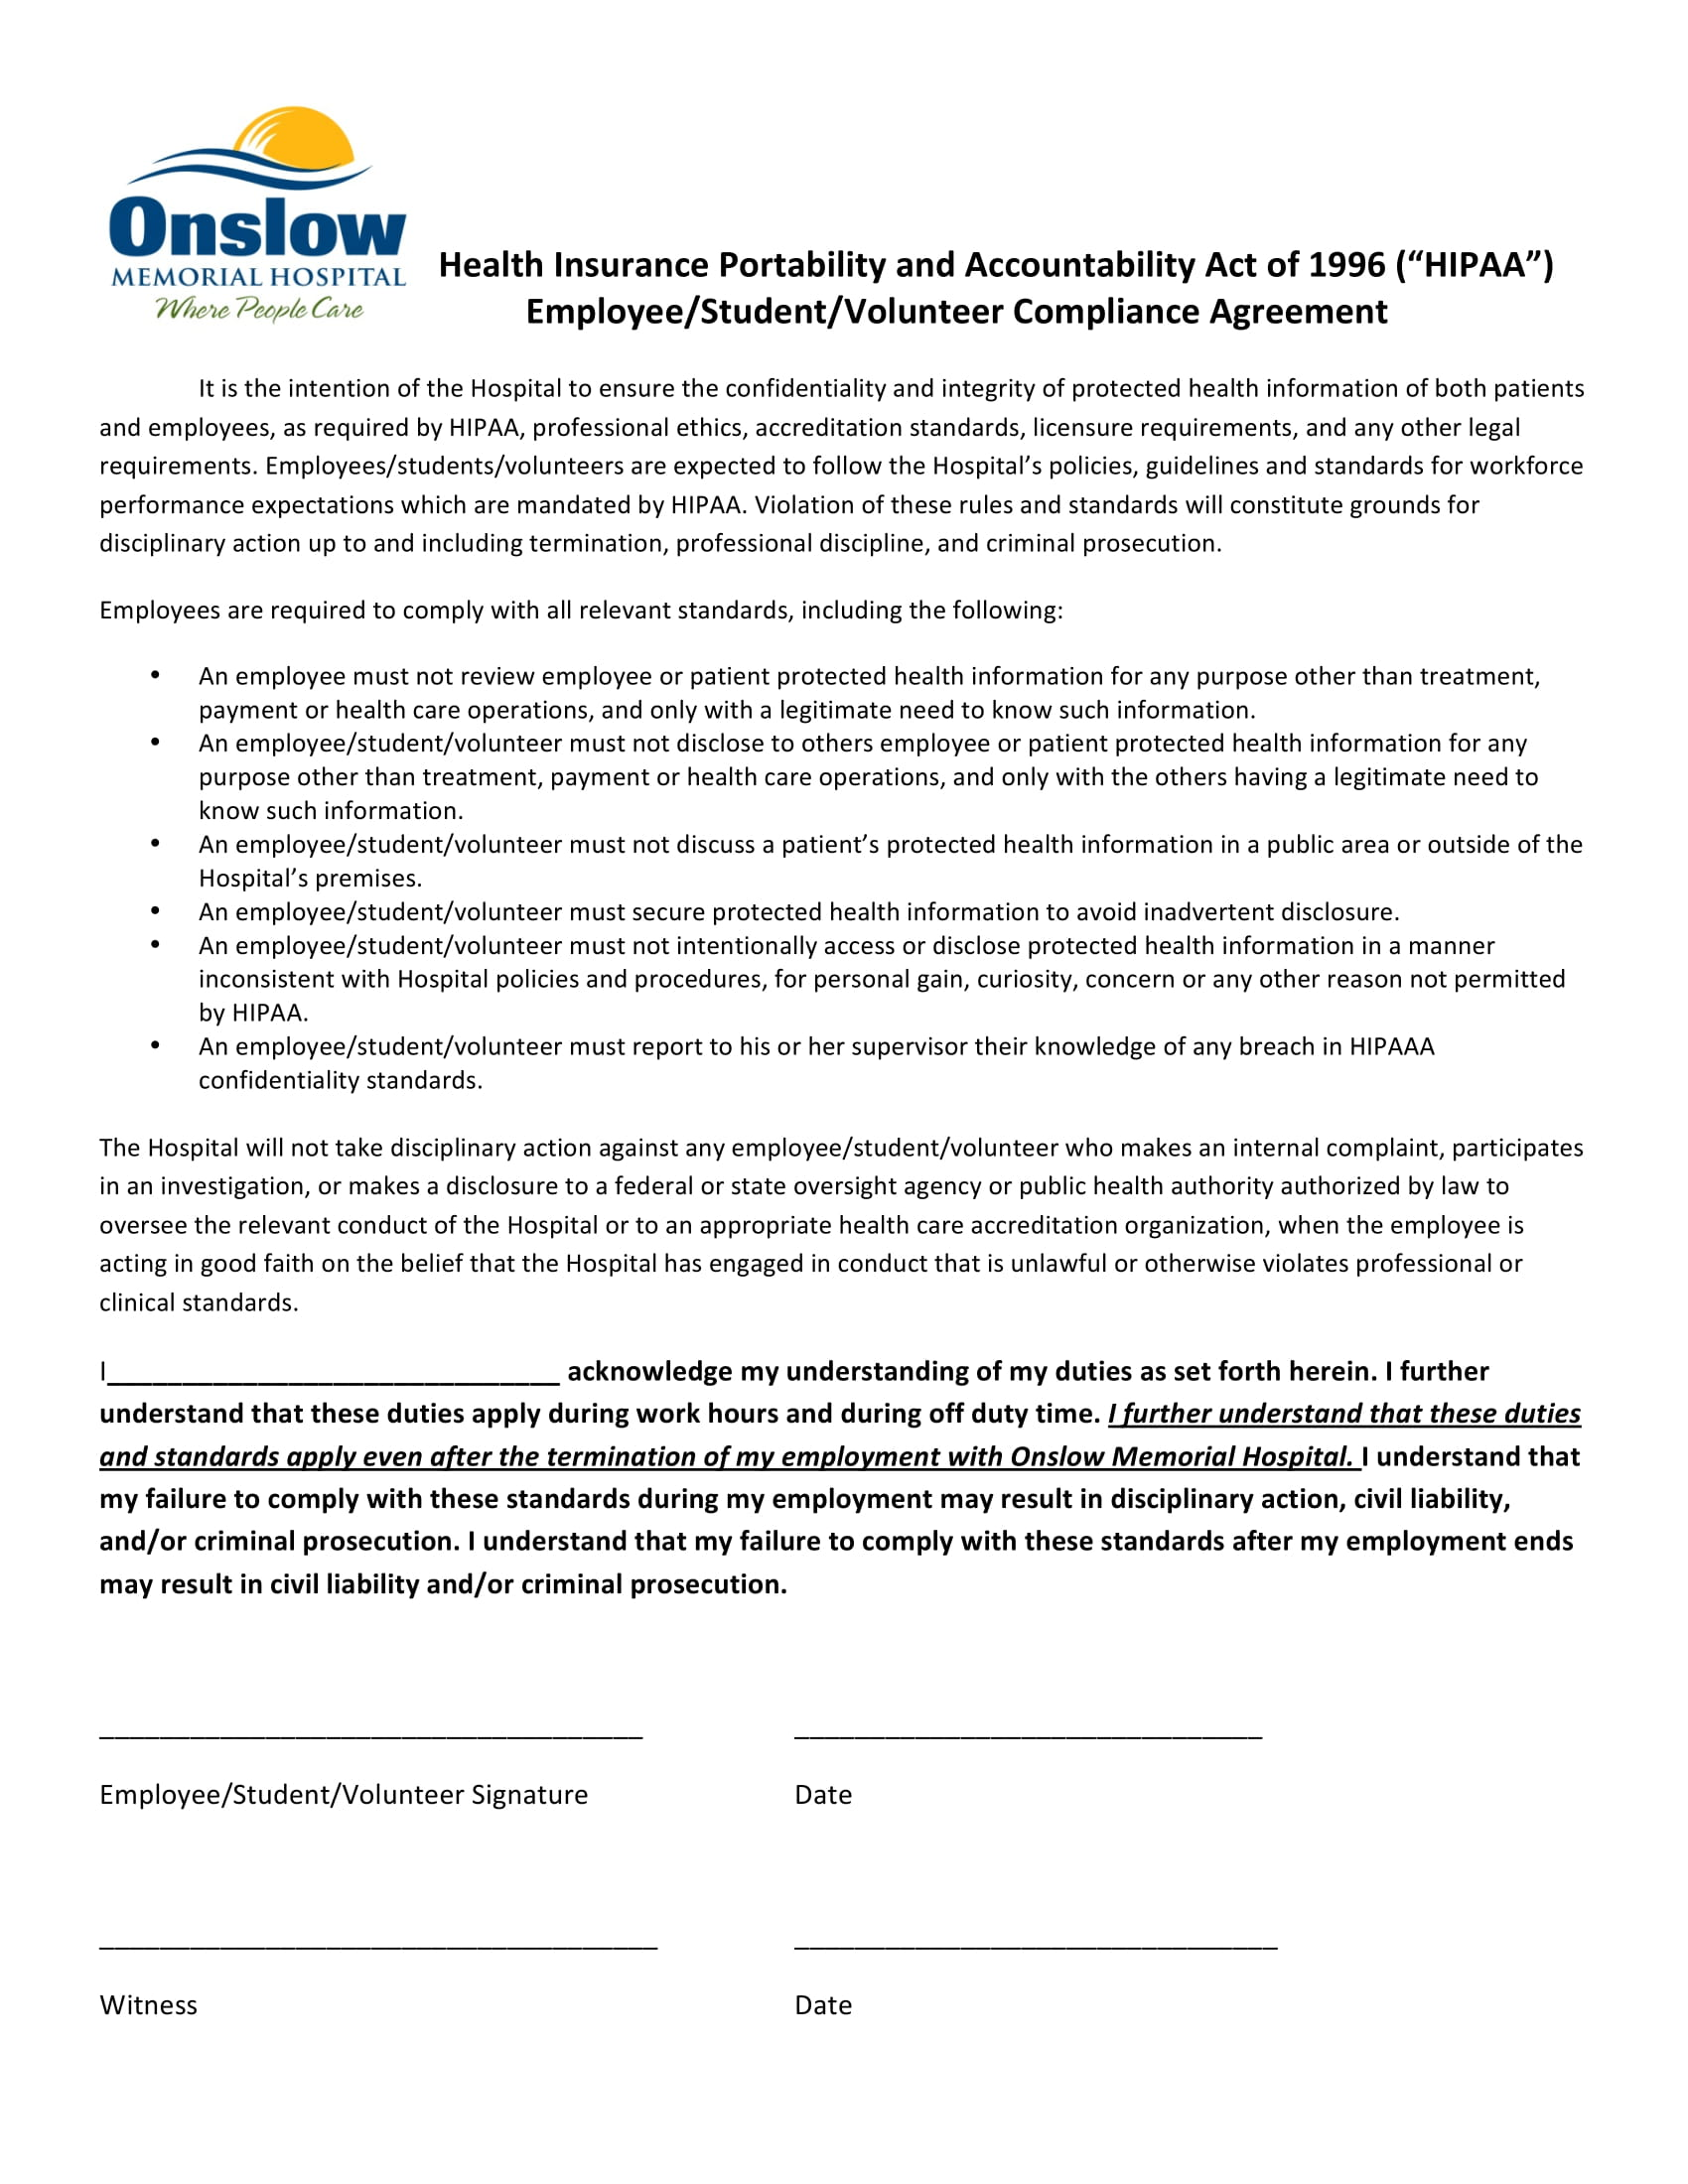 simple hipaa compliance agreement example 1